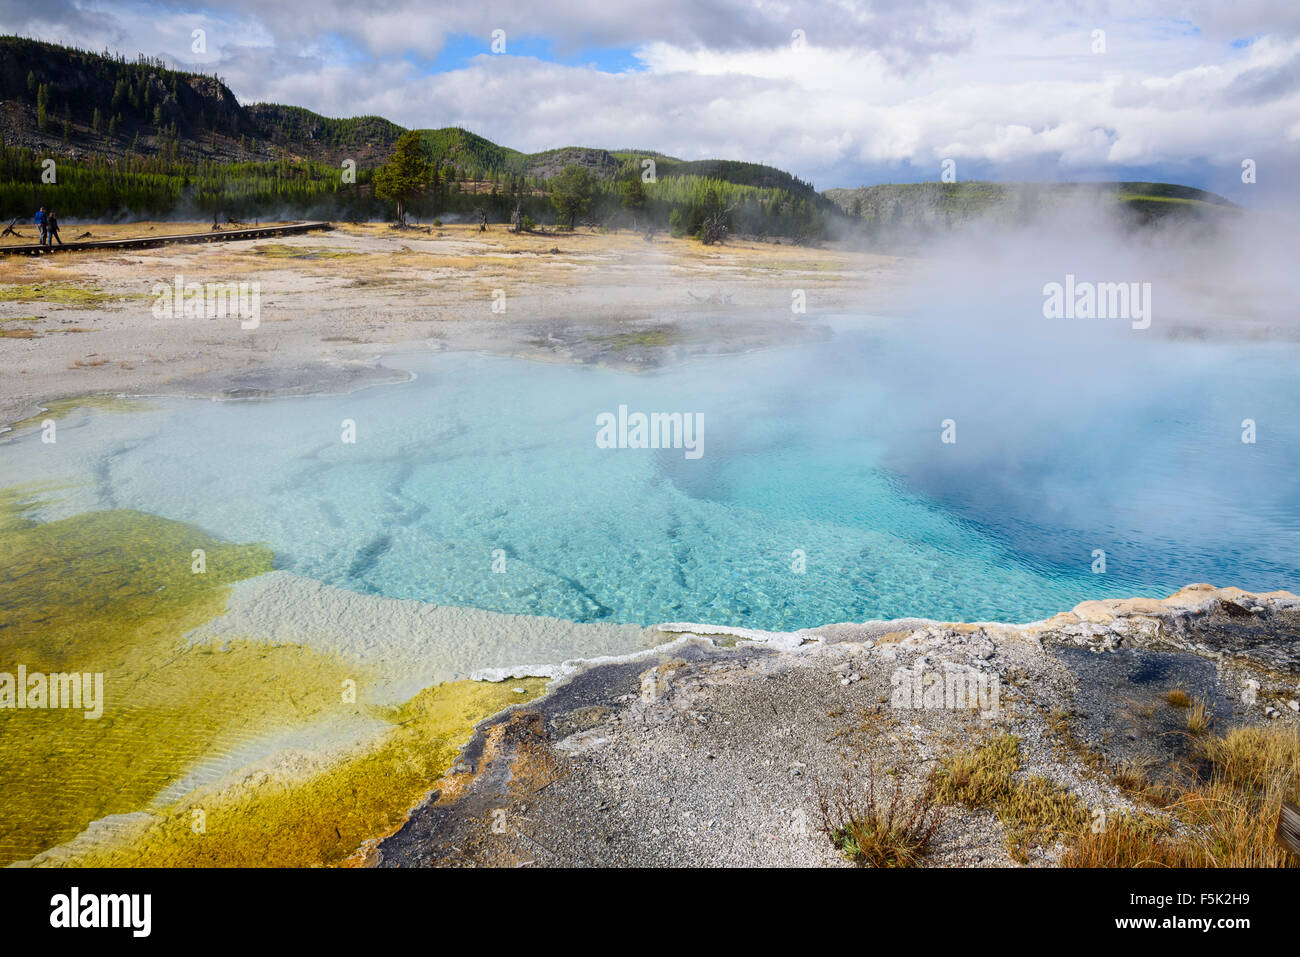 Sapphire Pool, Biscuit Basin, Yellowstone National Park, Wyoming, USA - Stock Image